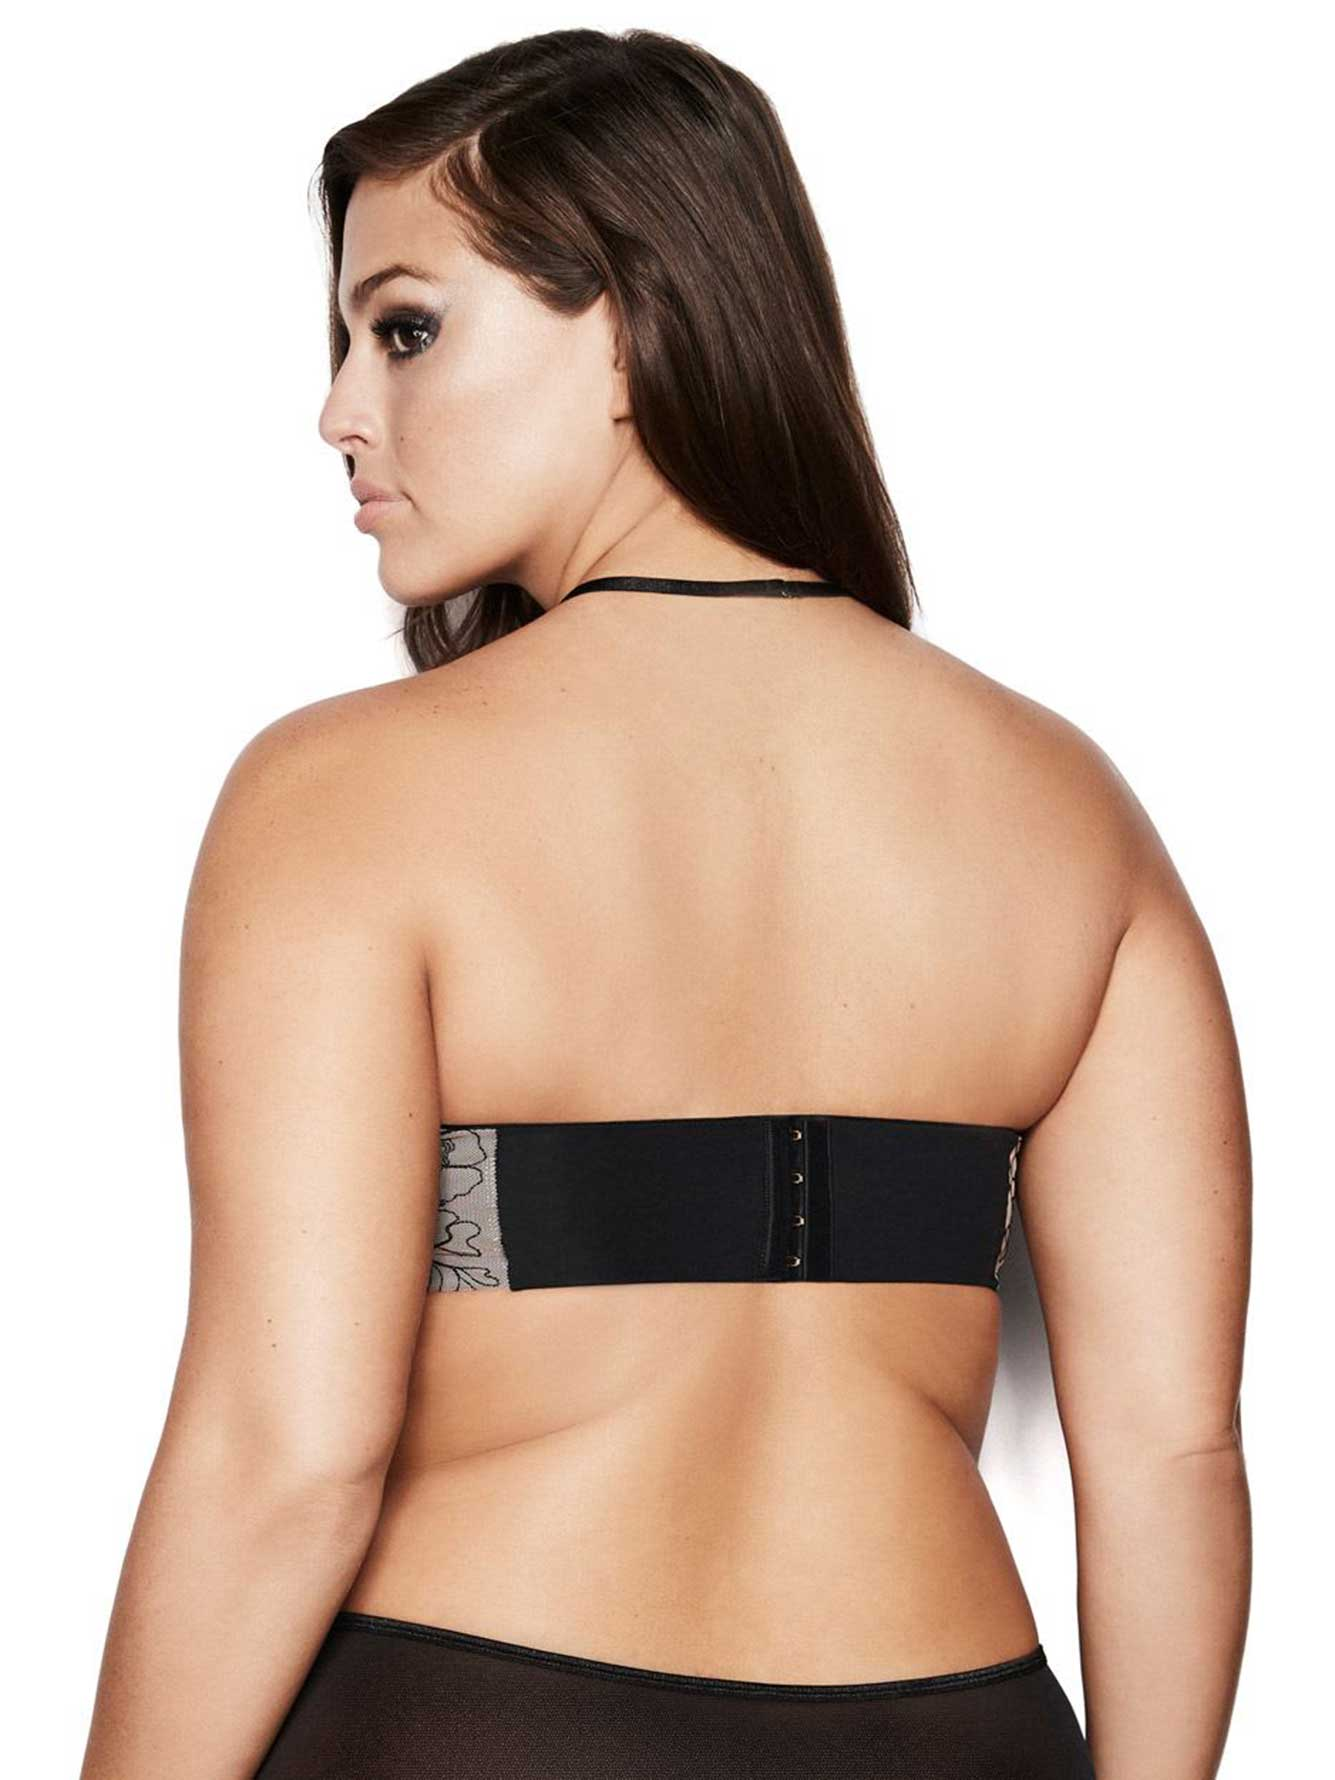 Ashley Graham Phenomenon Convertible Bra with Choker